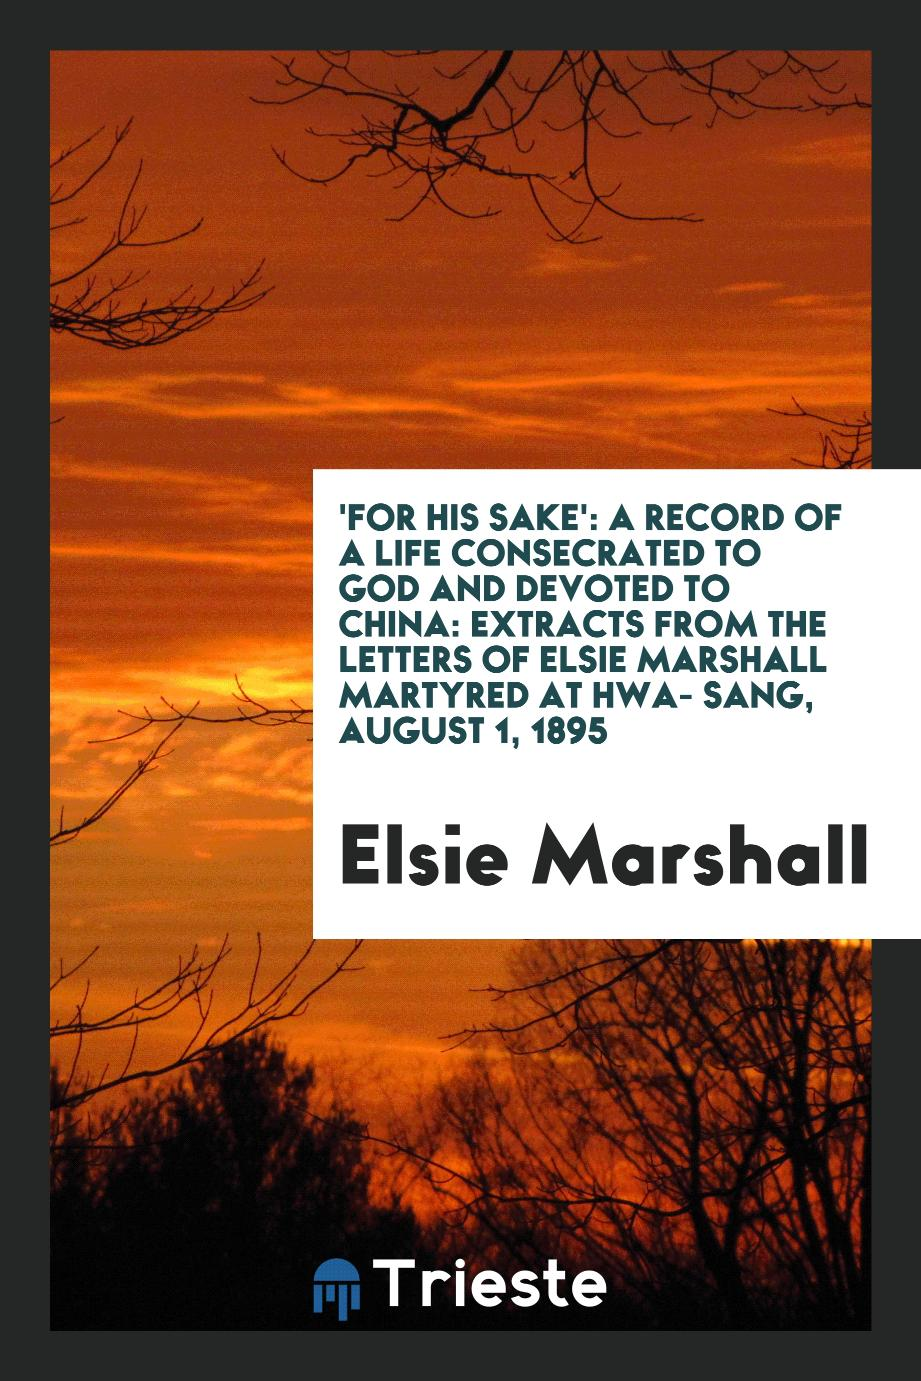 'For His sake': a record of a life consecrated to God and devoted to China: extracts from the letters of Elsie Marshall martyred at Hwa- Sang, August 1, 1895